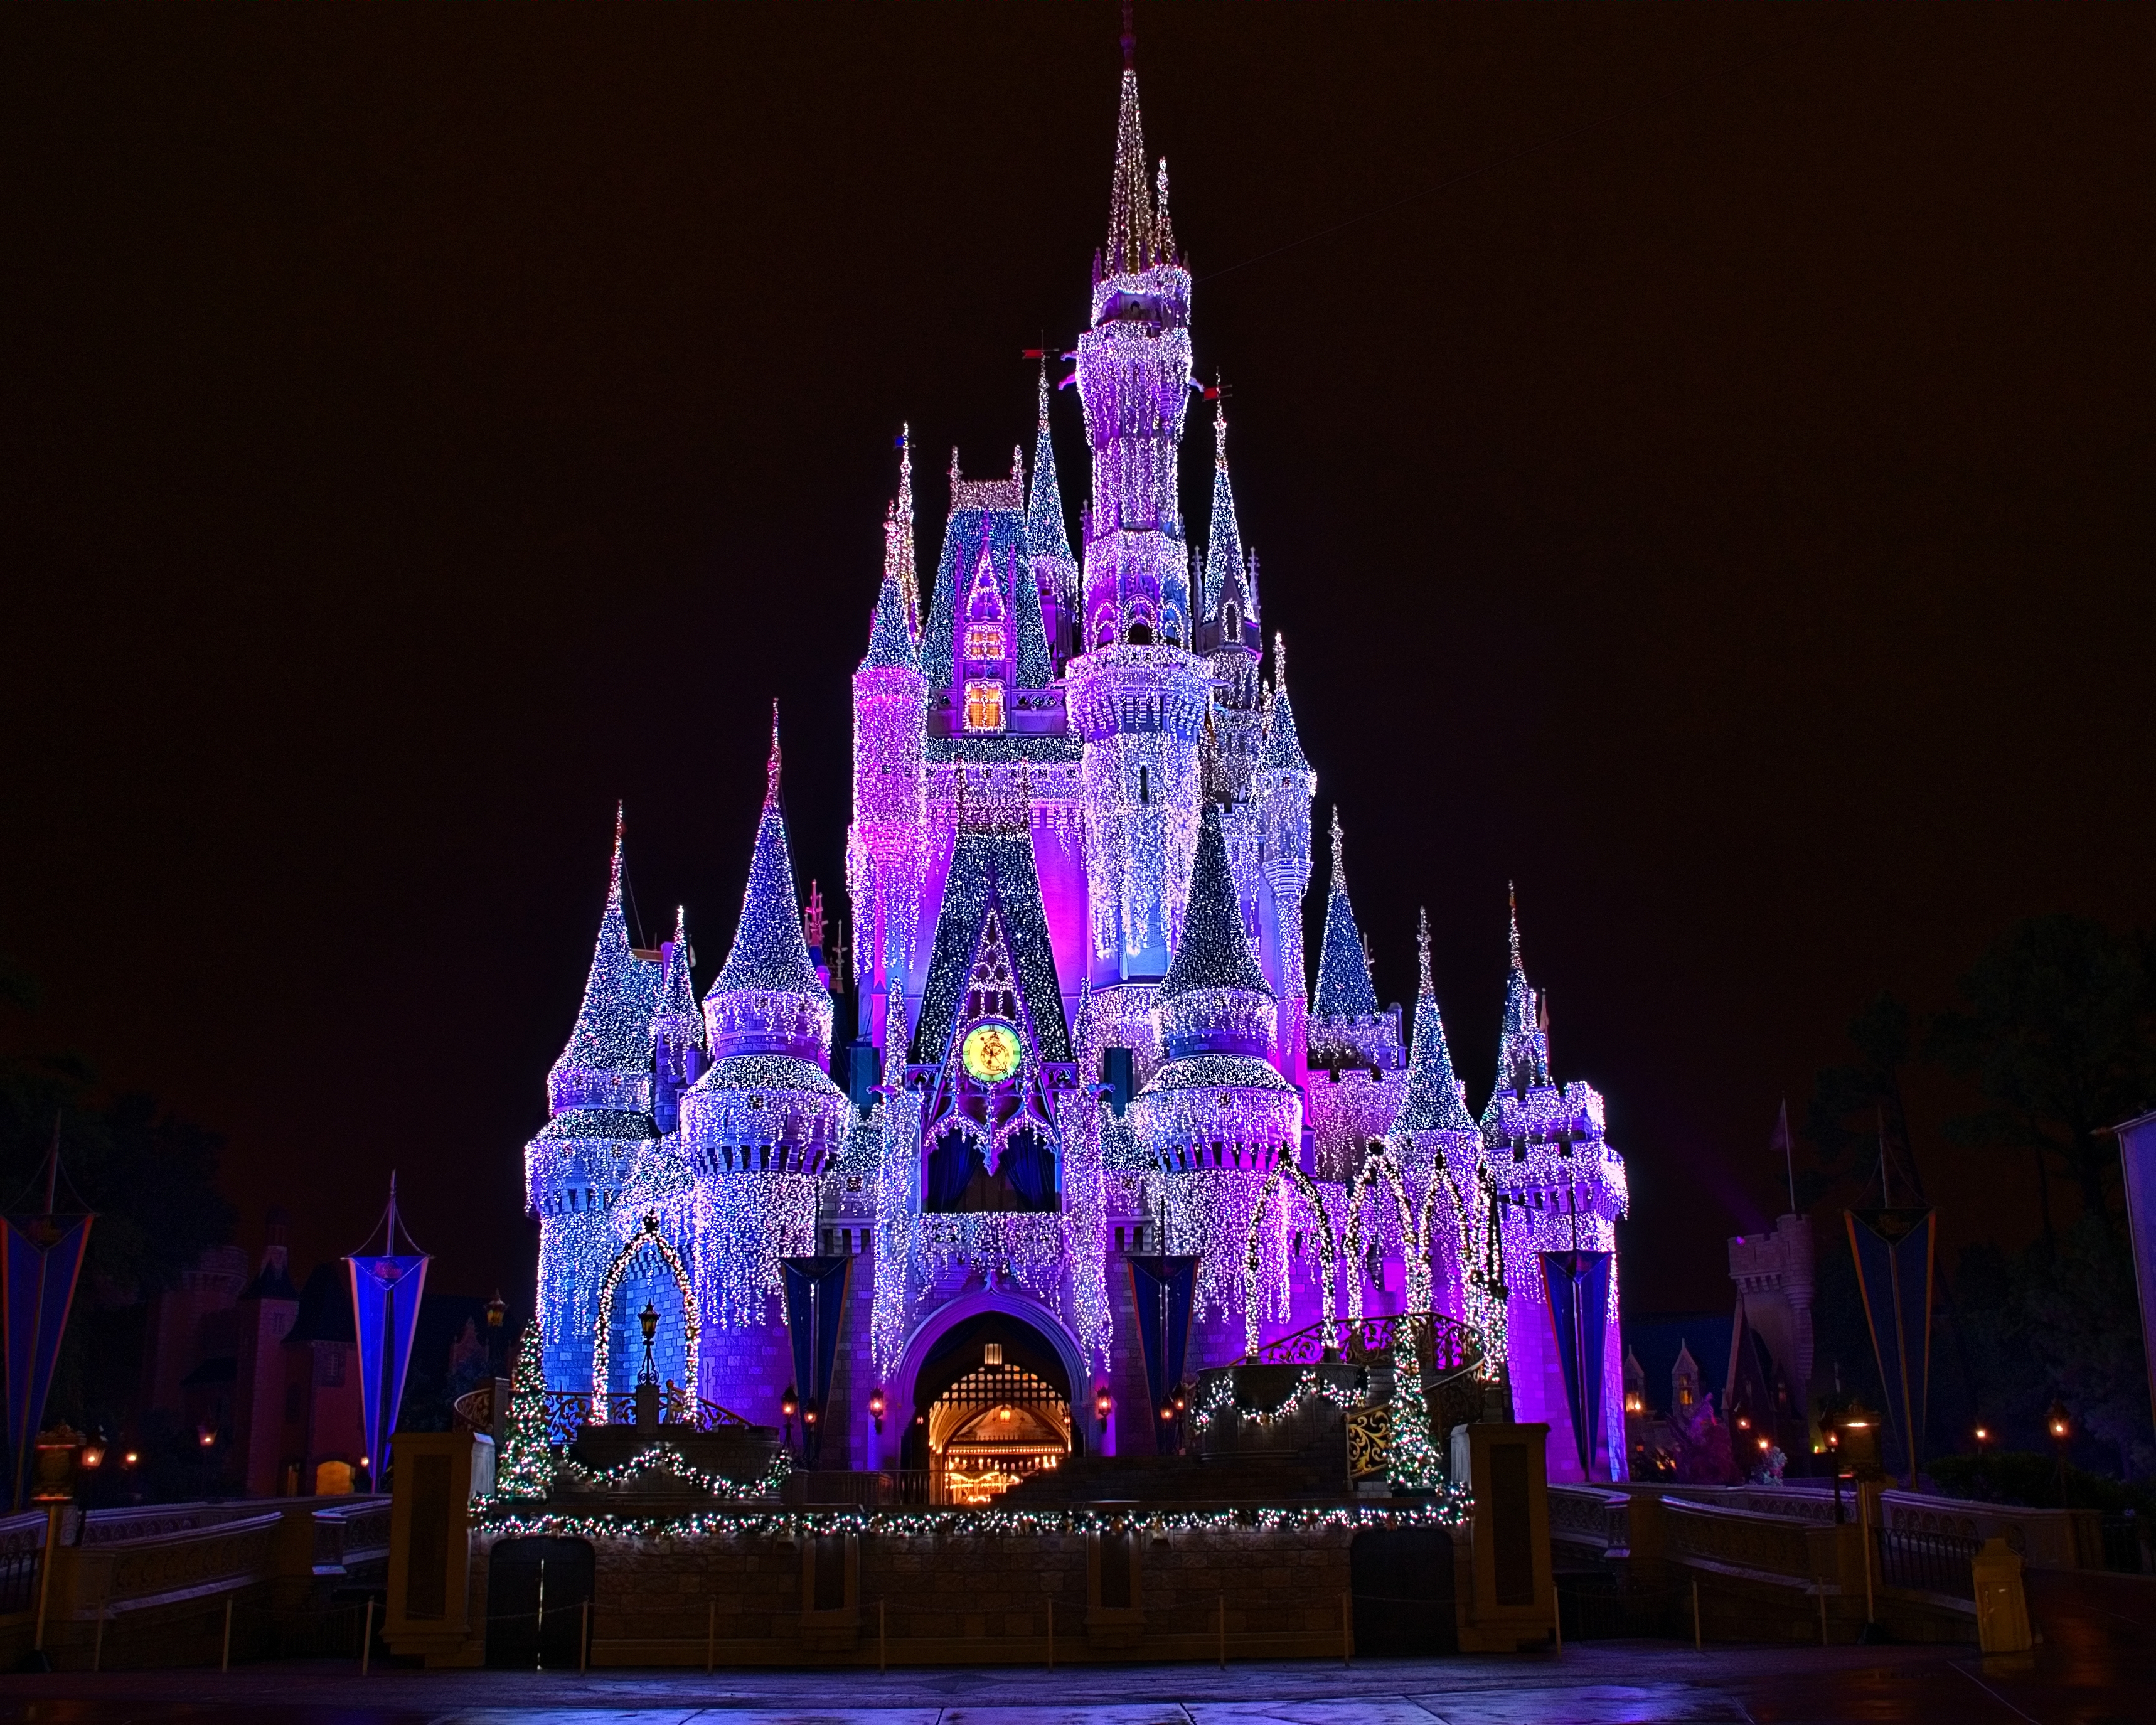 Disney Castle in Christmas Wallpapers Disney Castle in Christmas 3436x2749